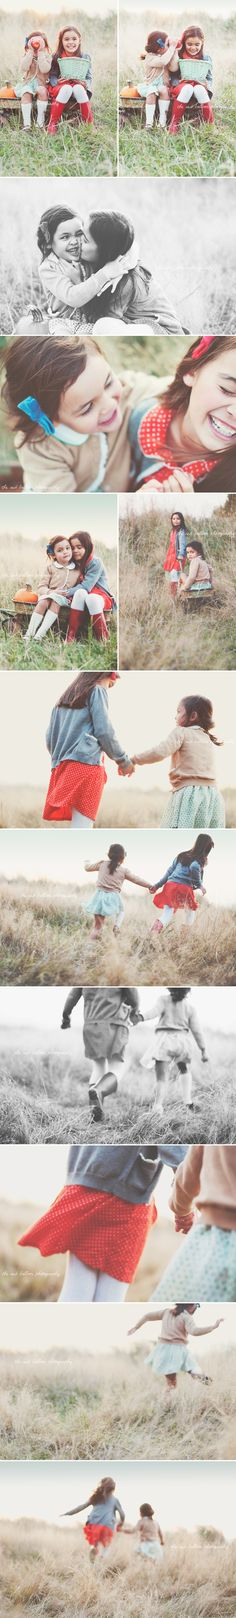 Adorable sister photo shoot